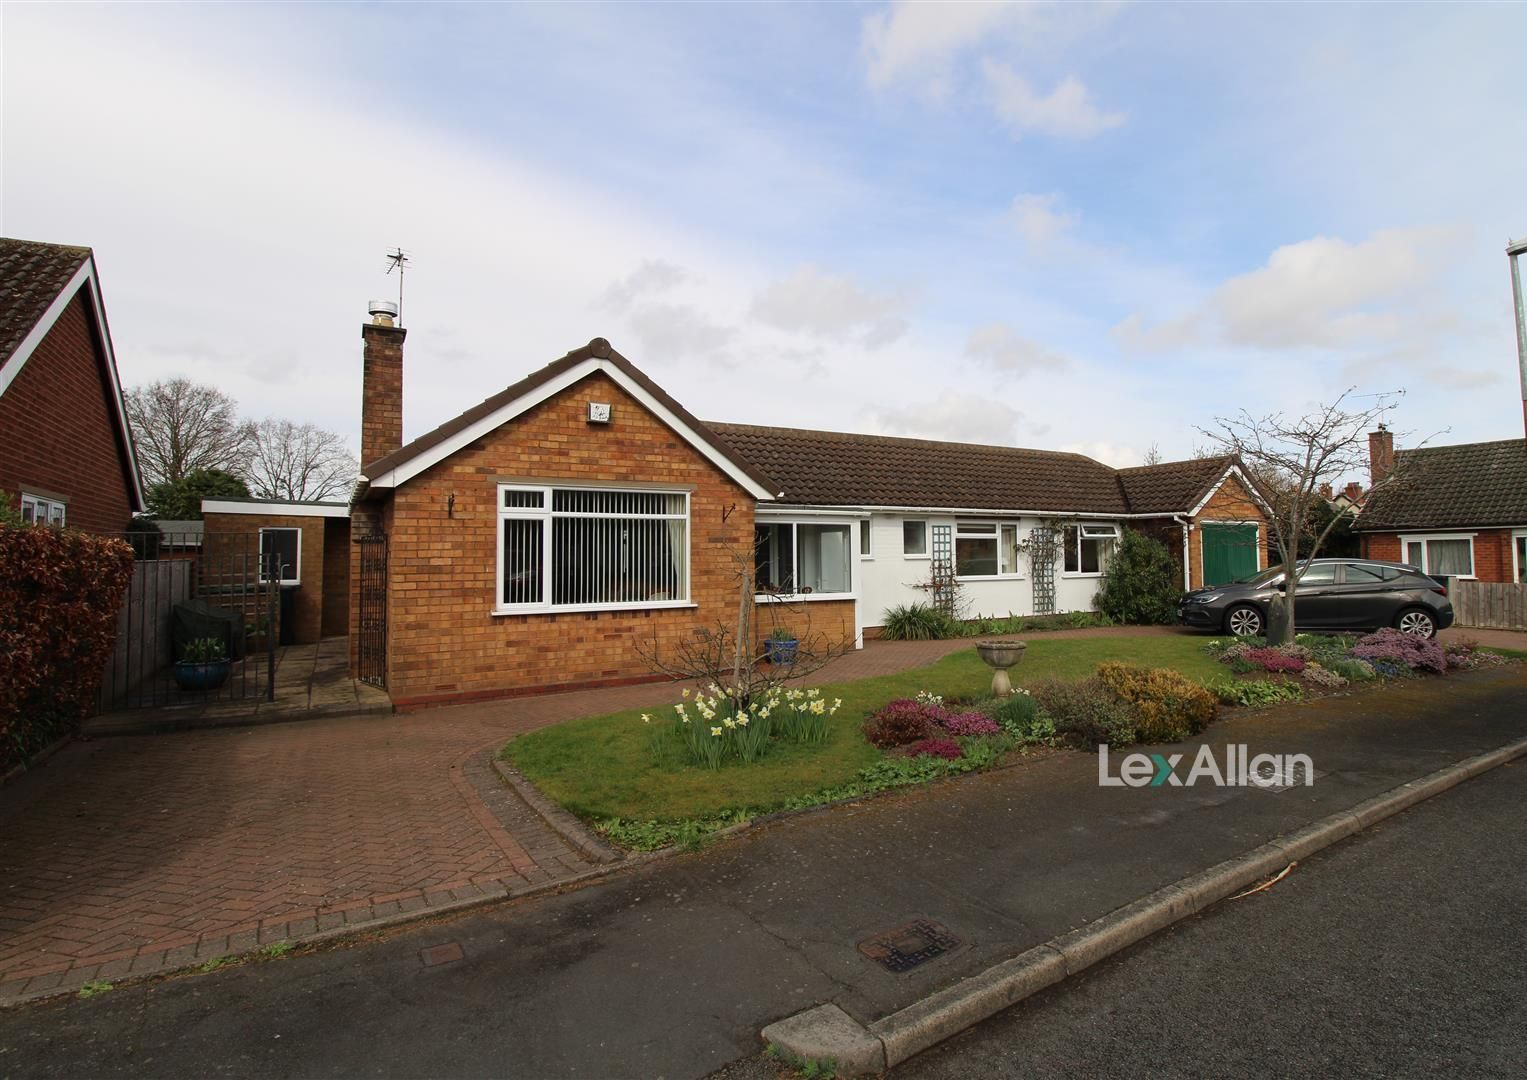 3 bed detached-bungalow for sale, DY8